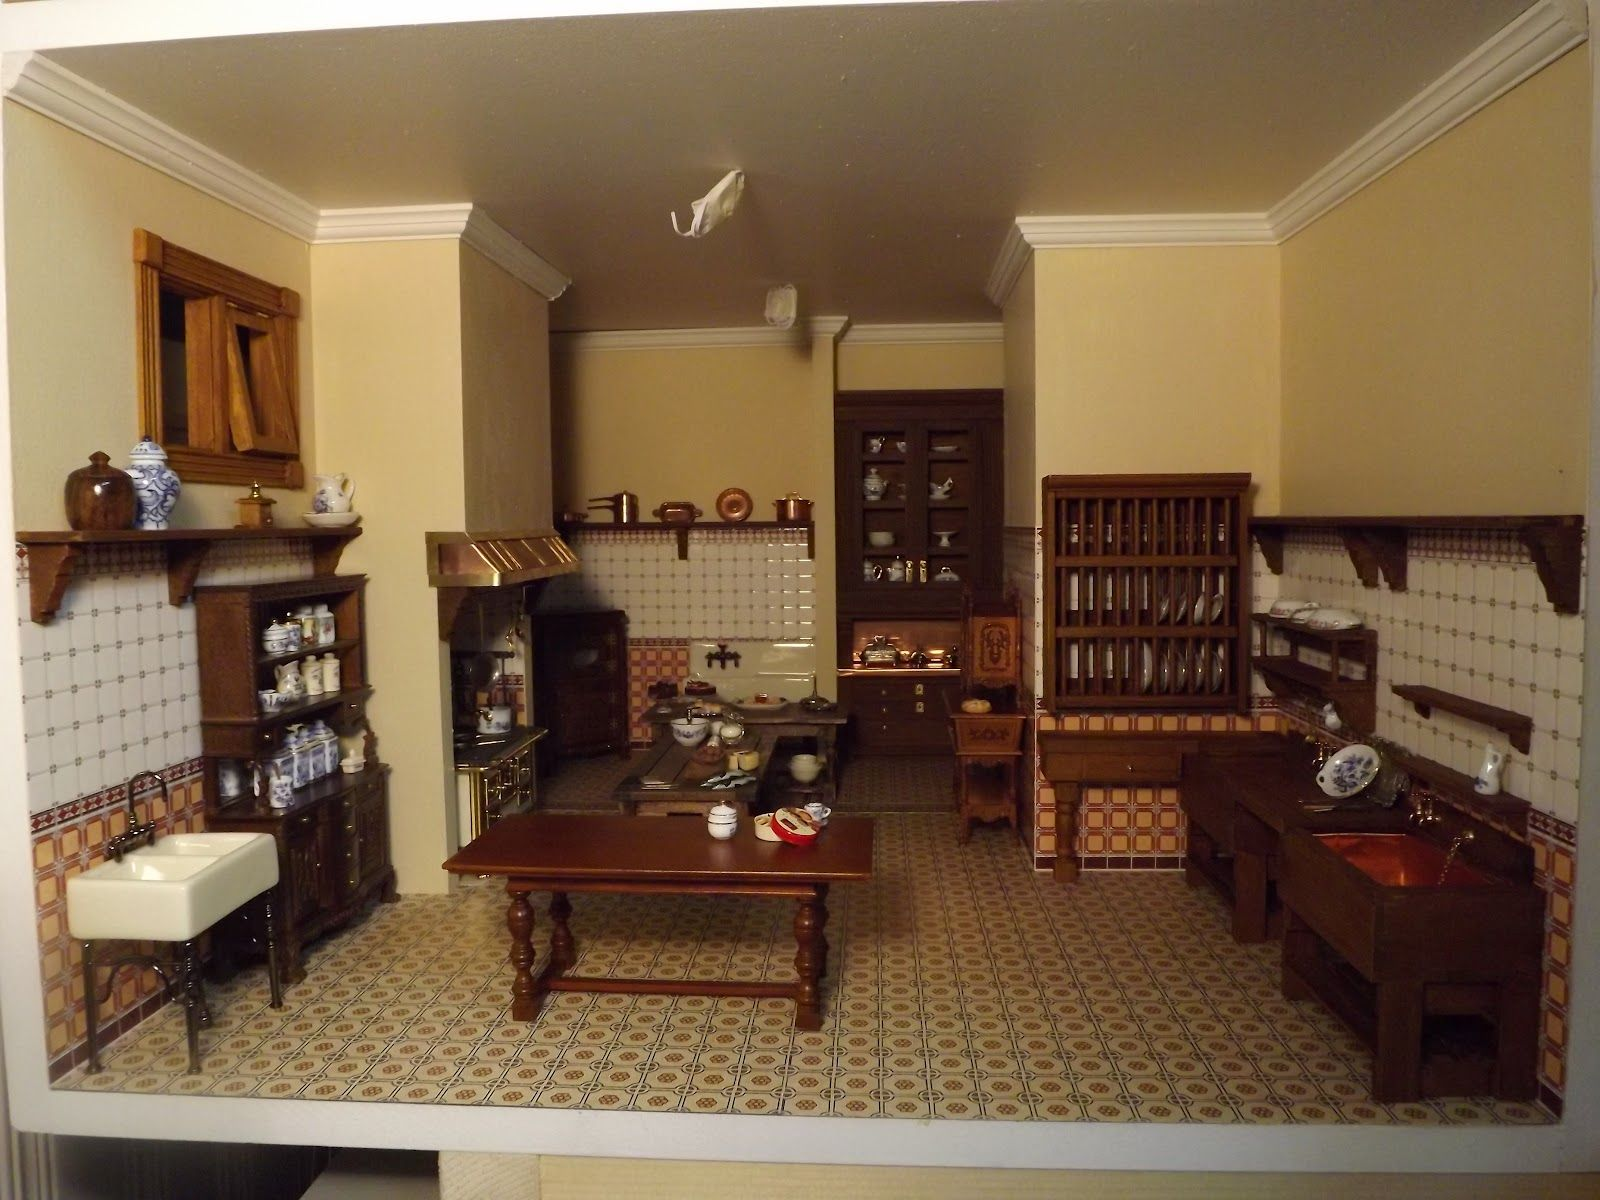 Victorian miniature houses - Late Victorian English Manor Dollhouse Miniature From Scratch Finished Kitchen Butler S Pantry And Scullery